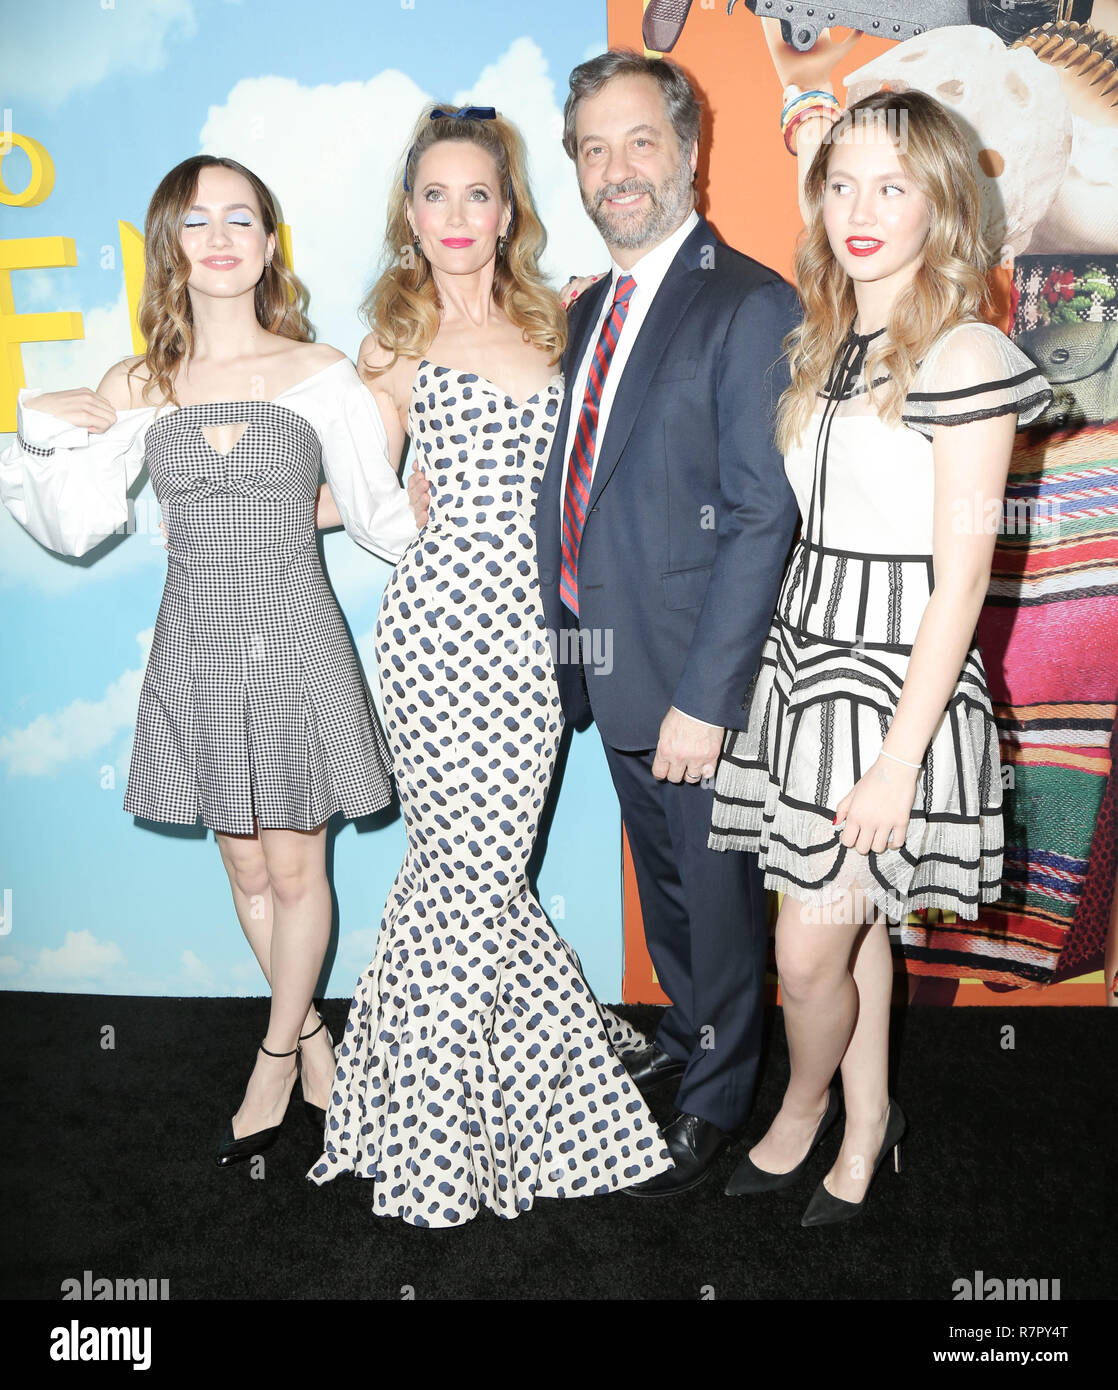 Los Angeles, USA. 10th Dec, 2018. 10 December 2018 - Hollywood, California - Leslie Mann, Judd Apatow, Maude Apatow, Iris Apatow. Universal Pictures And DreamWorks Pictures' Premiere Of ''Welcome To Marwen'' held at The Acrlight Hollywood. Photo Credit: PMA/AdMedia Credit: Pma/AdMedia/ZUMA Wire/Alamy Live News - Stock Image